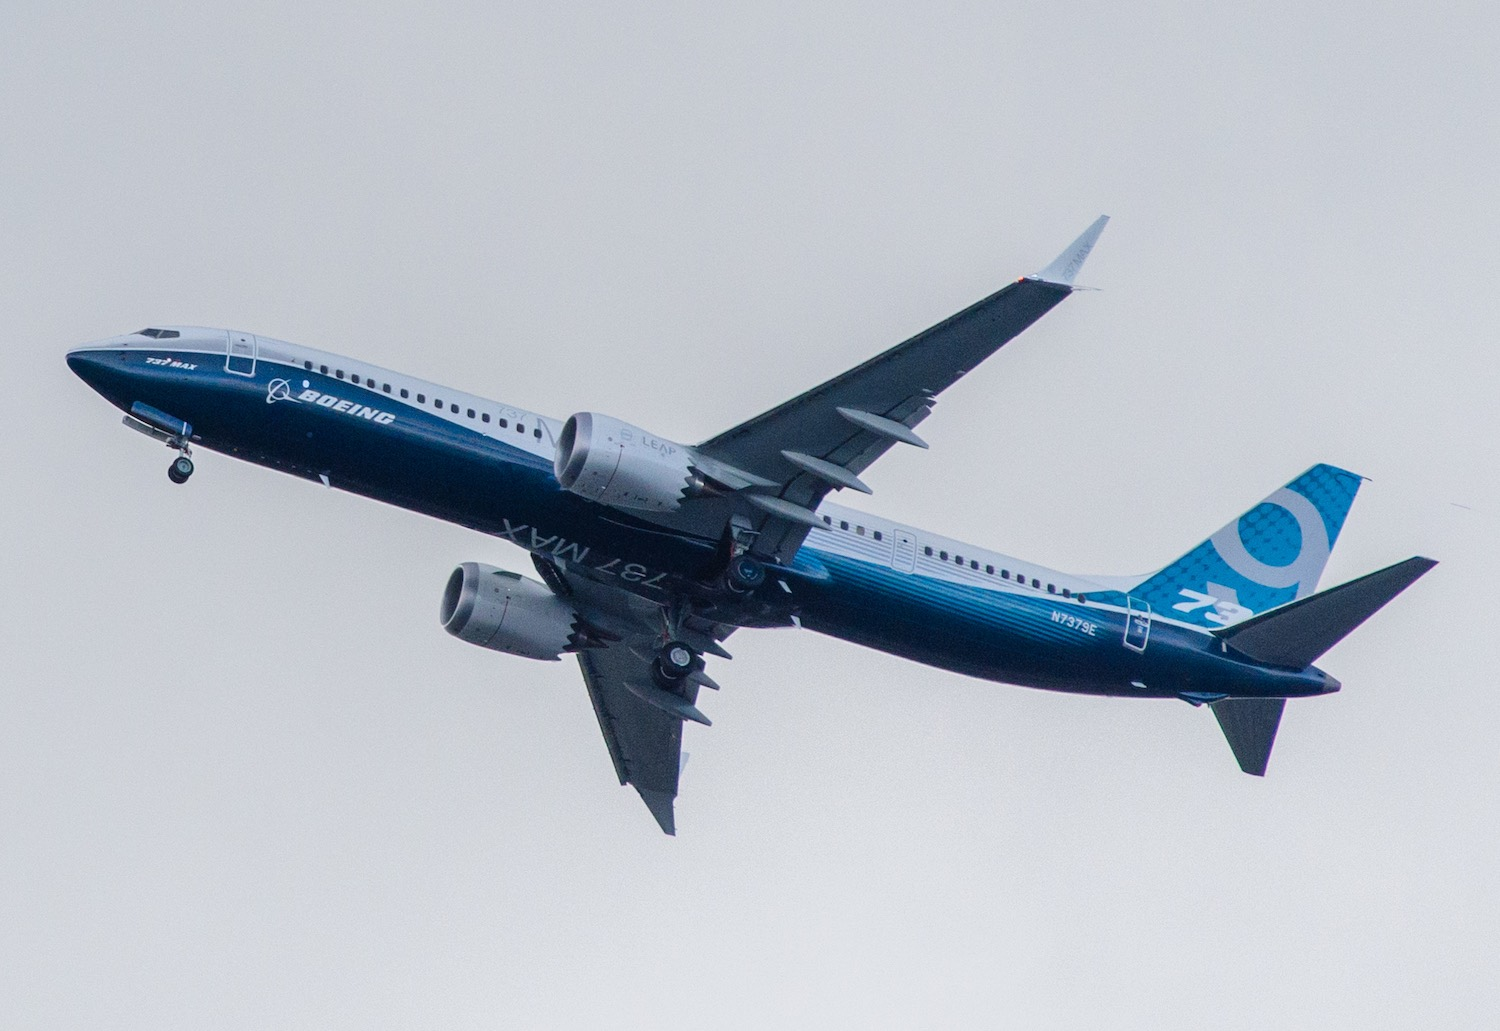 Politics a factor in return of Boeing's 737 Max